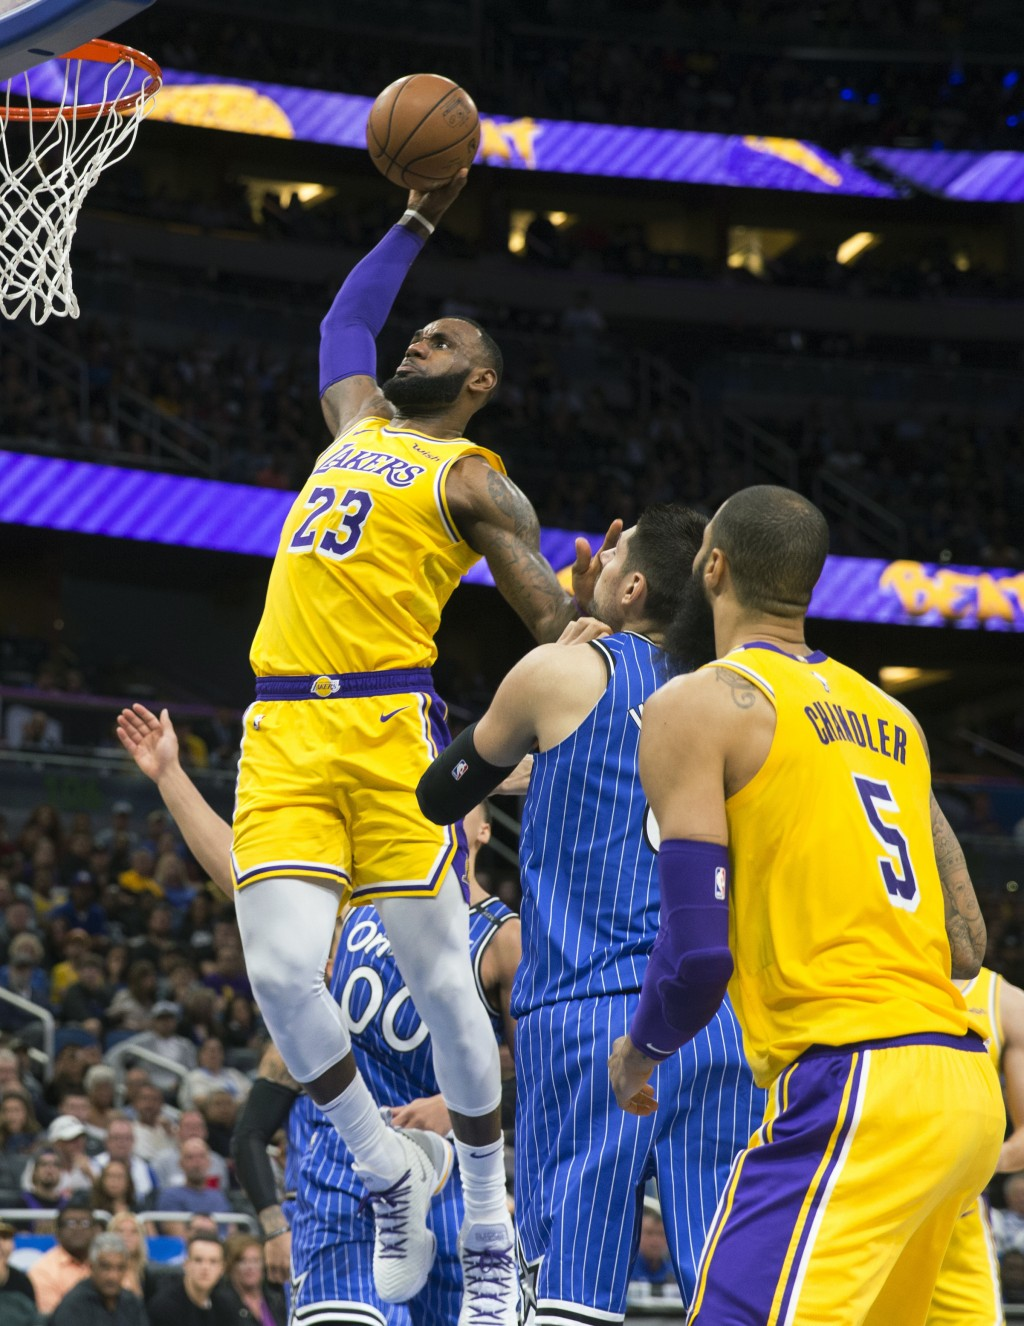 Los Angeles Lakers forward LeBron James (23) slams the ball over Orlando Magic center Nikola Vucevic (9) in the first half of an NBA basketball game,